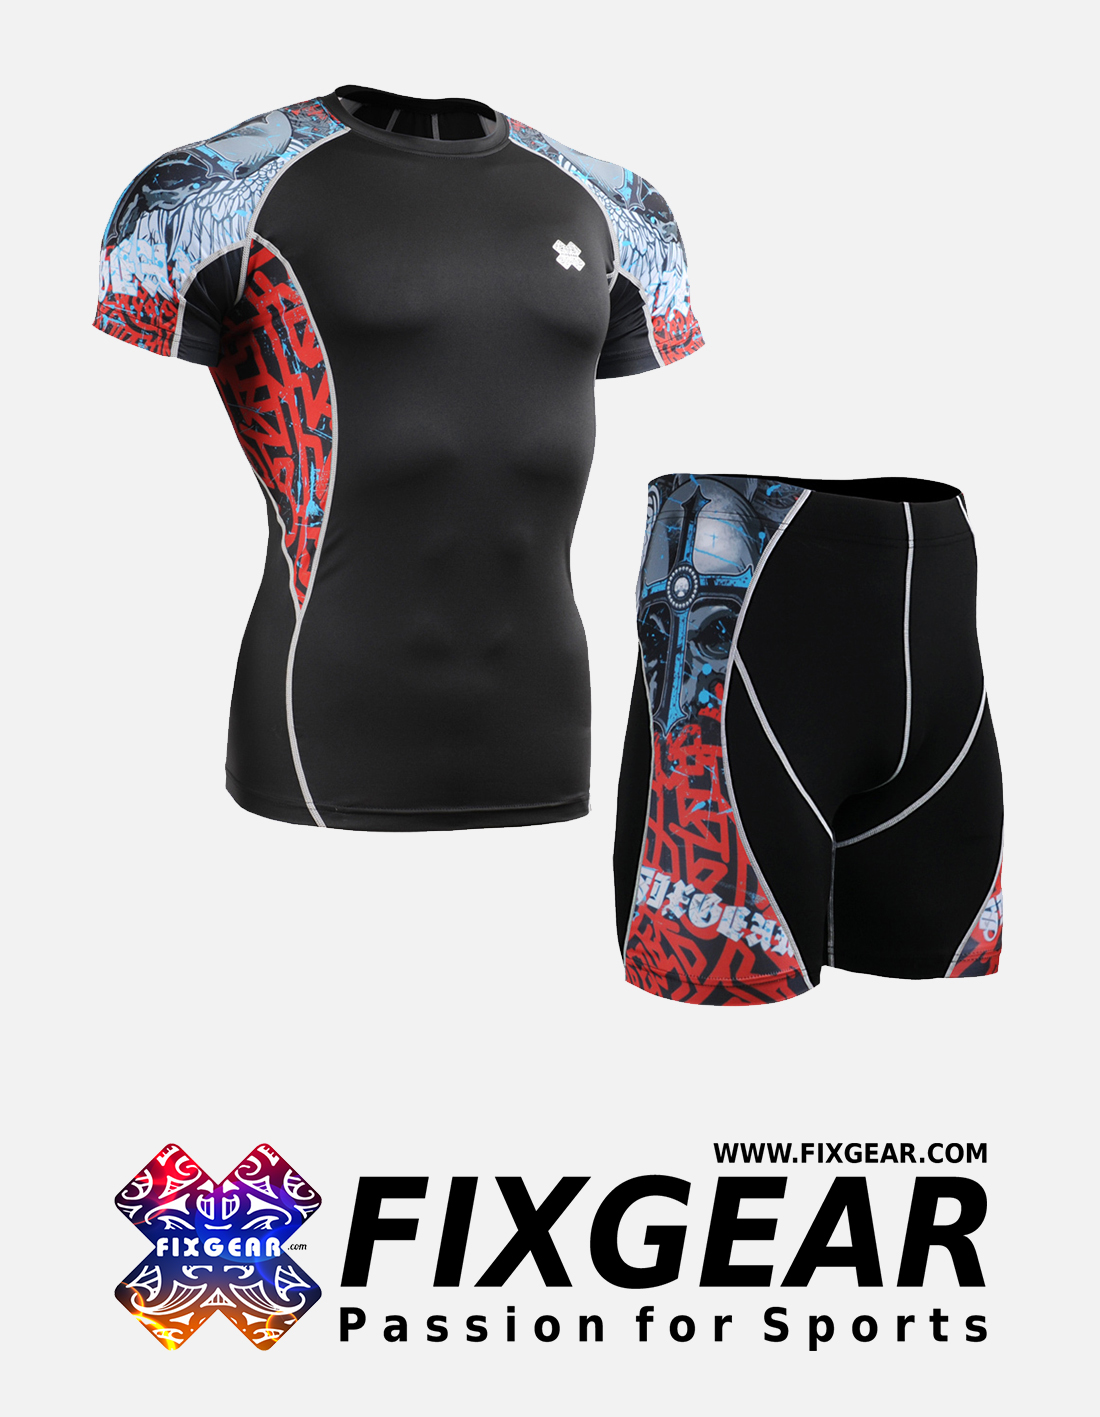 FIXGEAR C2S-P2S-B73 Set Compression Base Layer Shirt & Compression Drawer Shorts